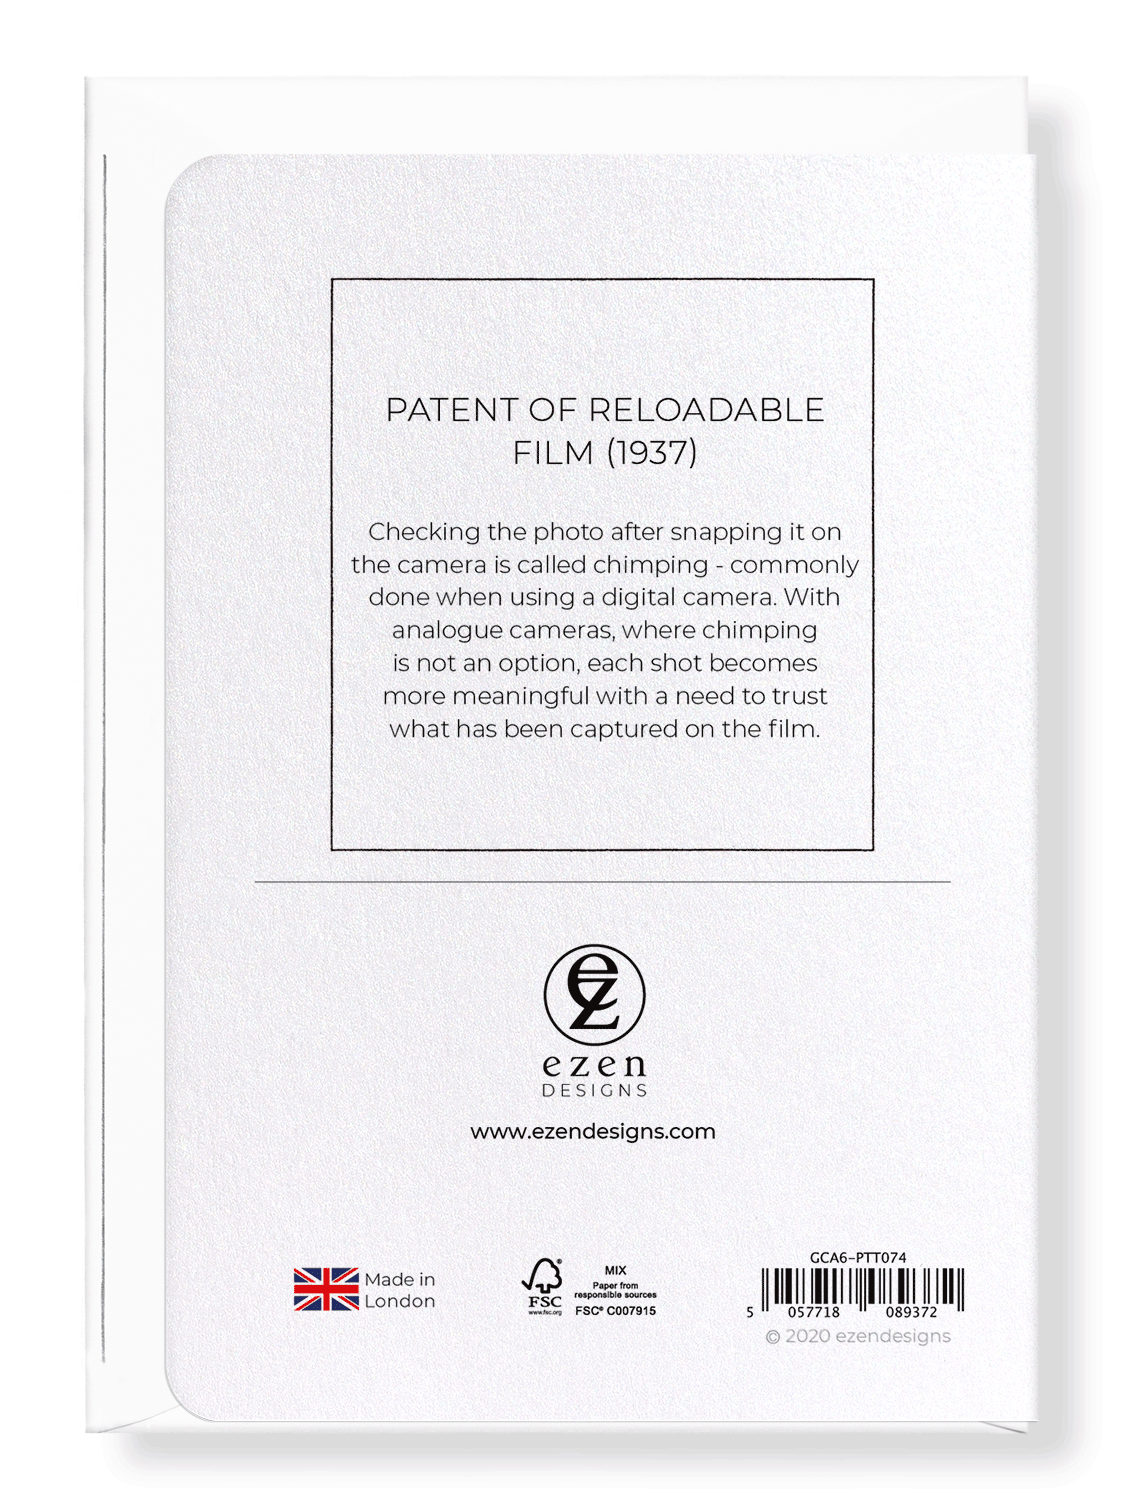 Ezen Designs - Patent of reloadable film (1937) - Greeting Card - Back